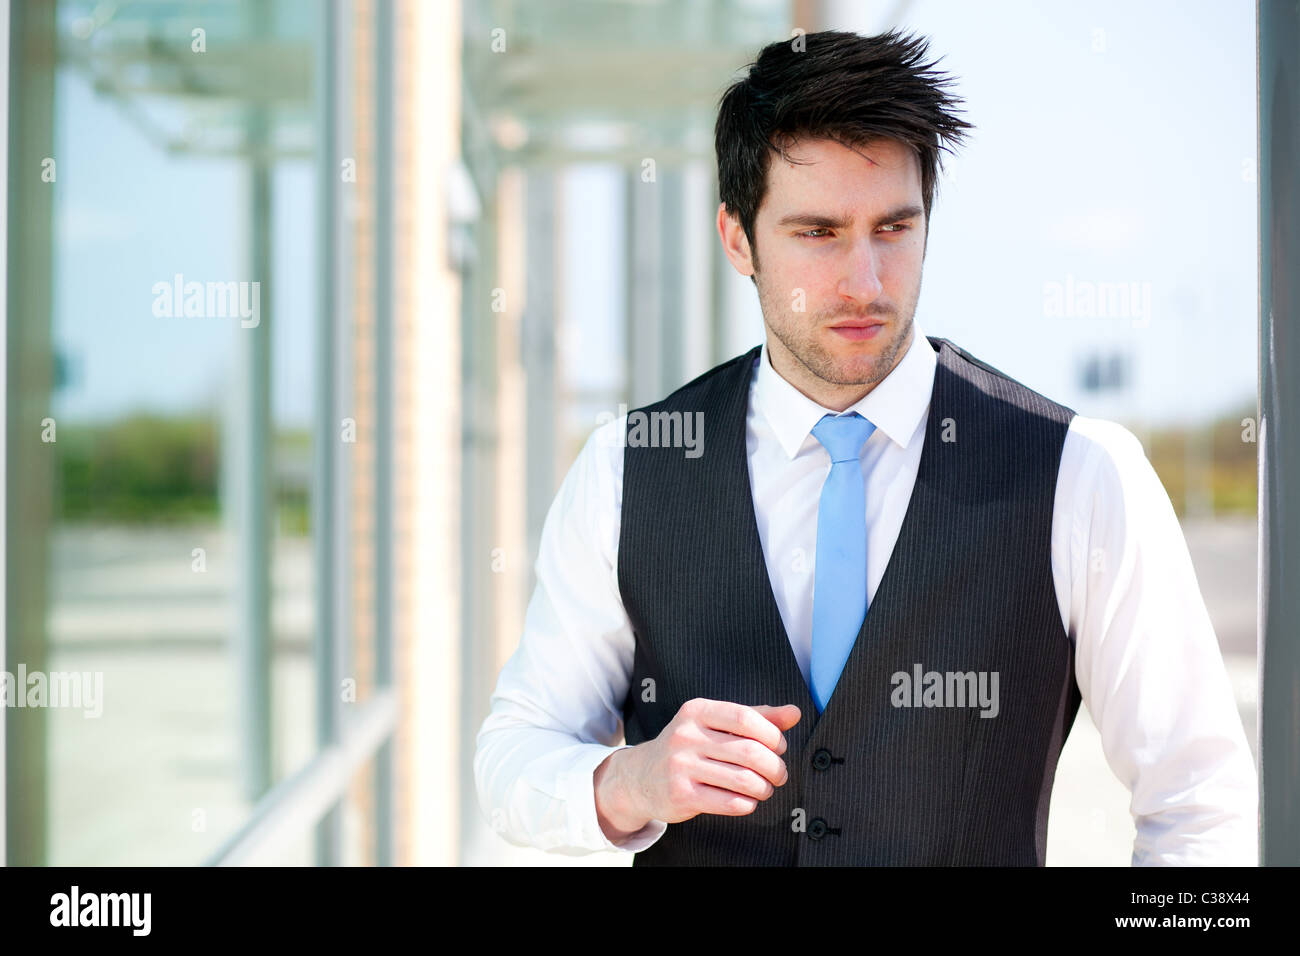 Man stood outside office - Stock Image